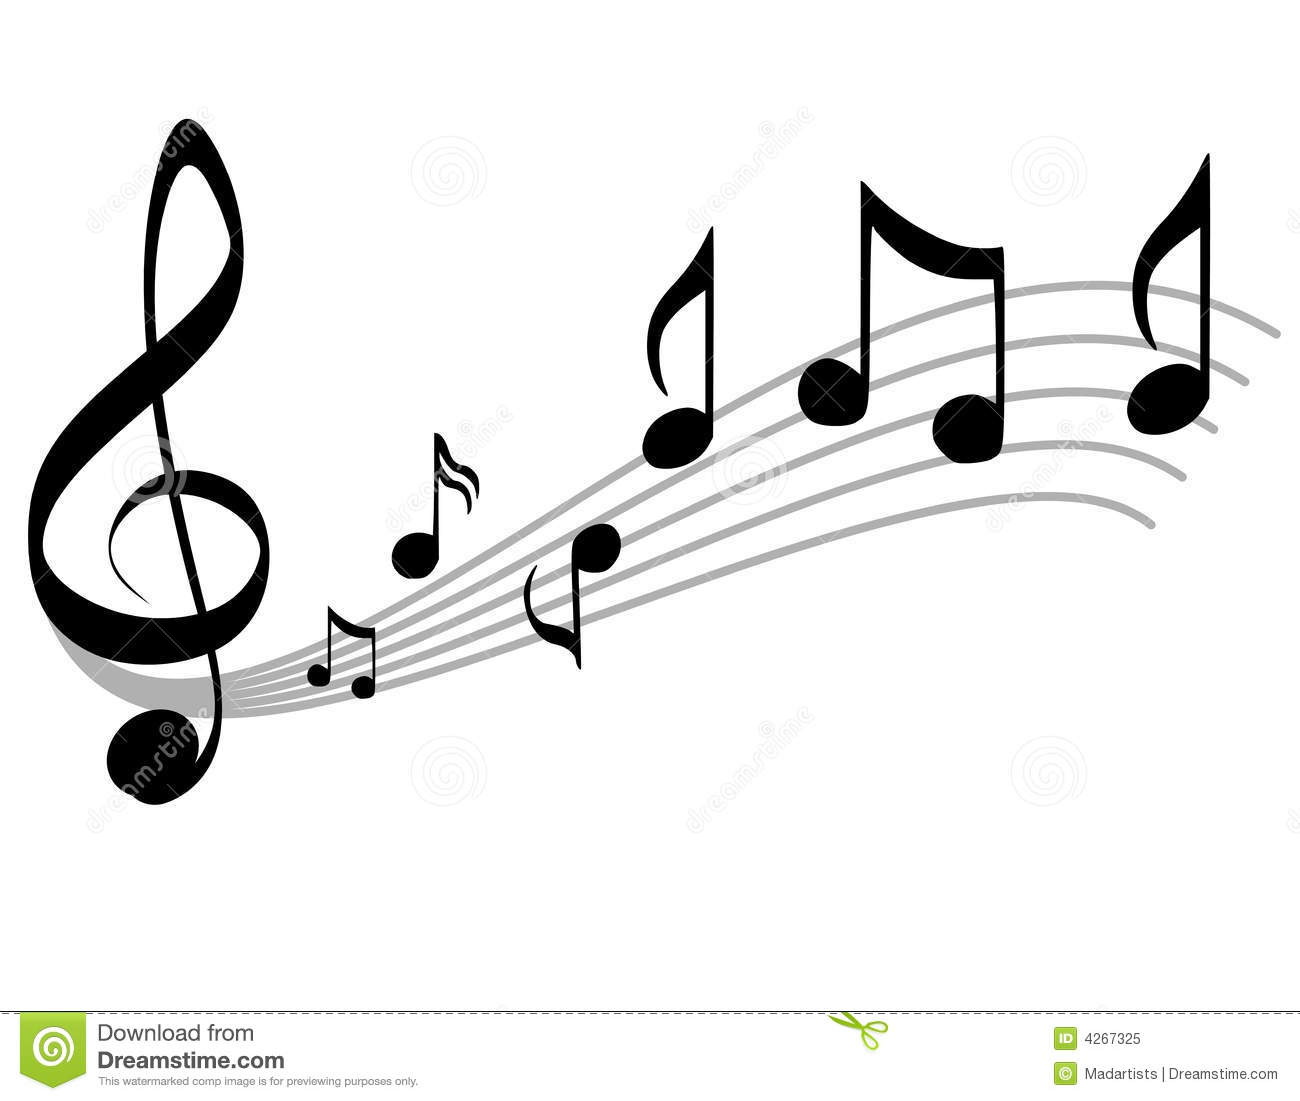 Free black and white music clipart banner freeuse library Music Clipart Free Download | Free download best Music Clipart Free ... banner freeuse library